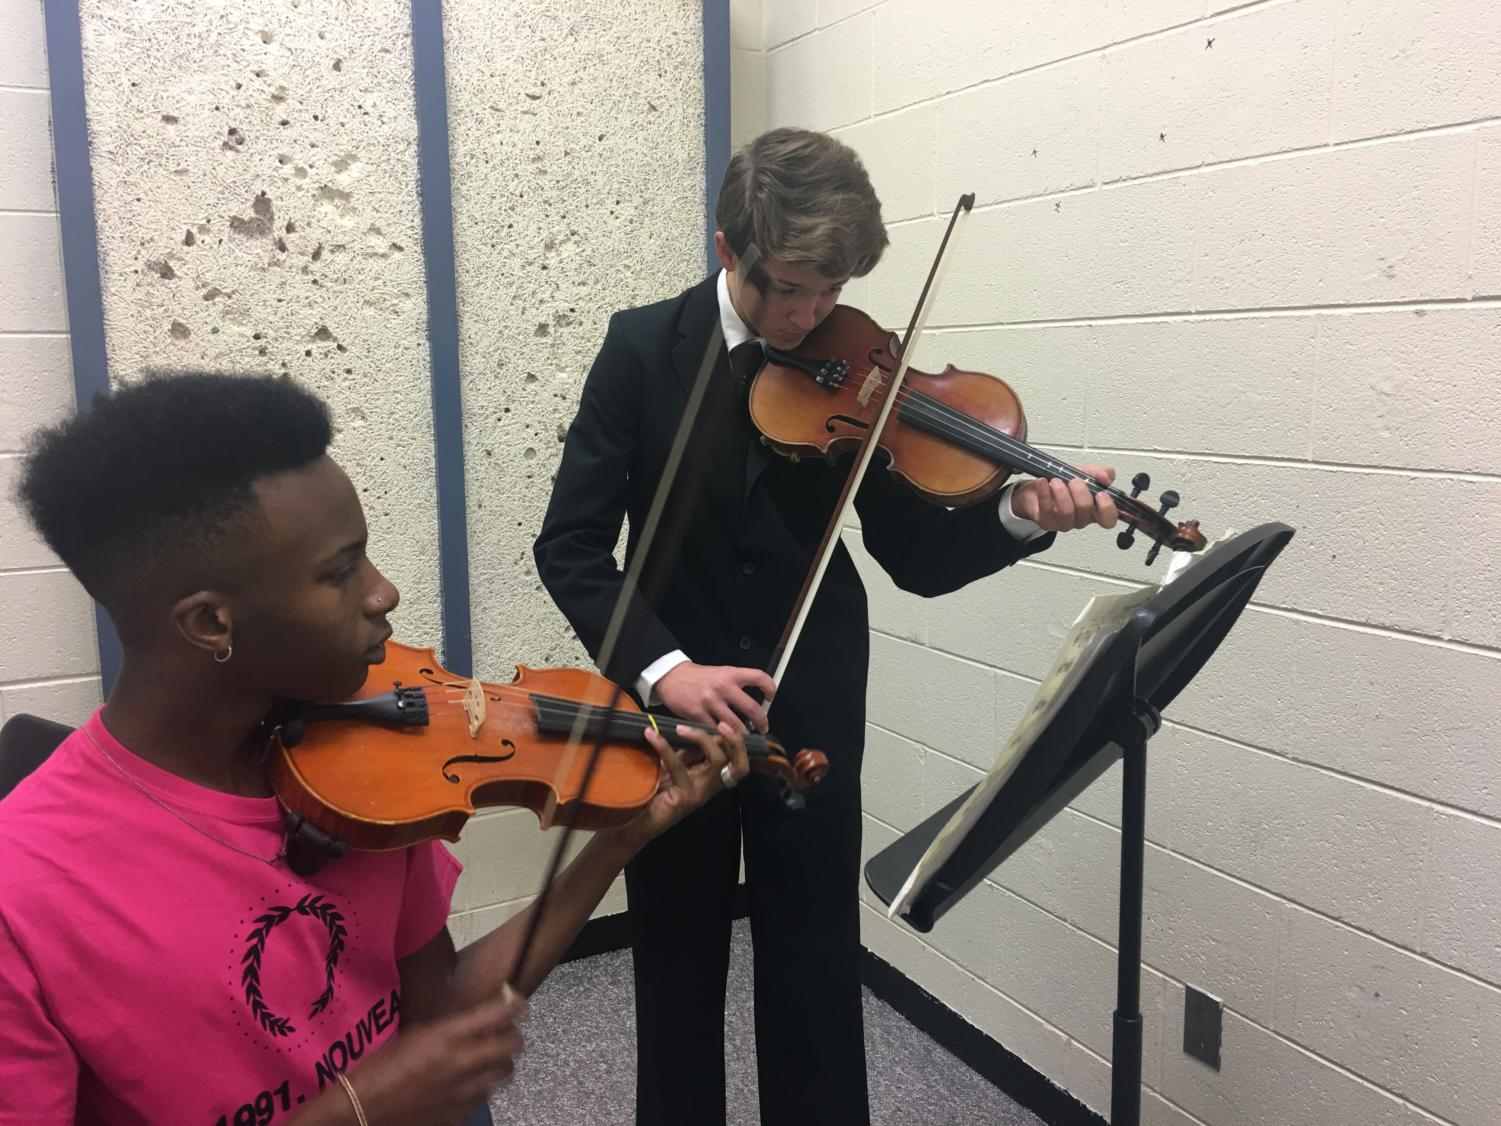 Senior Jordan Hubbard (left) and freshman Logan Fairhurst (right) practicing their Solo and Ensemble music piece.